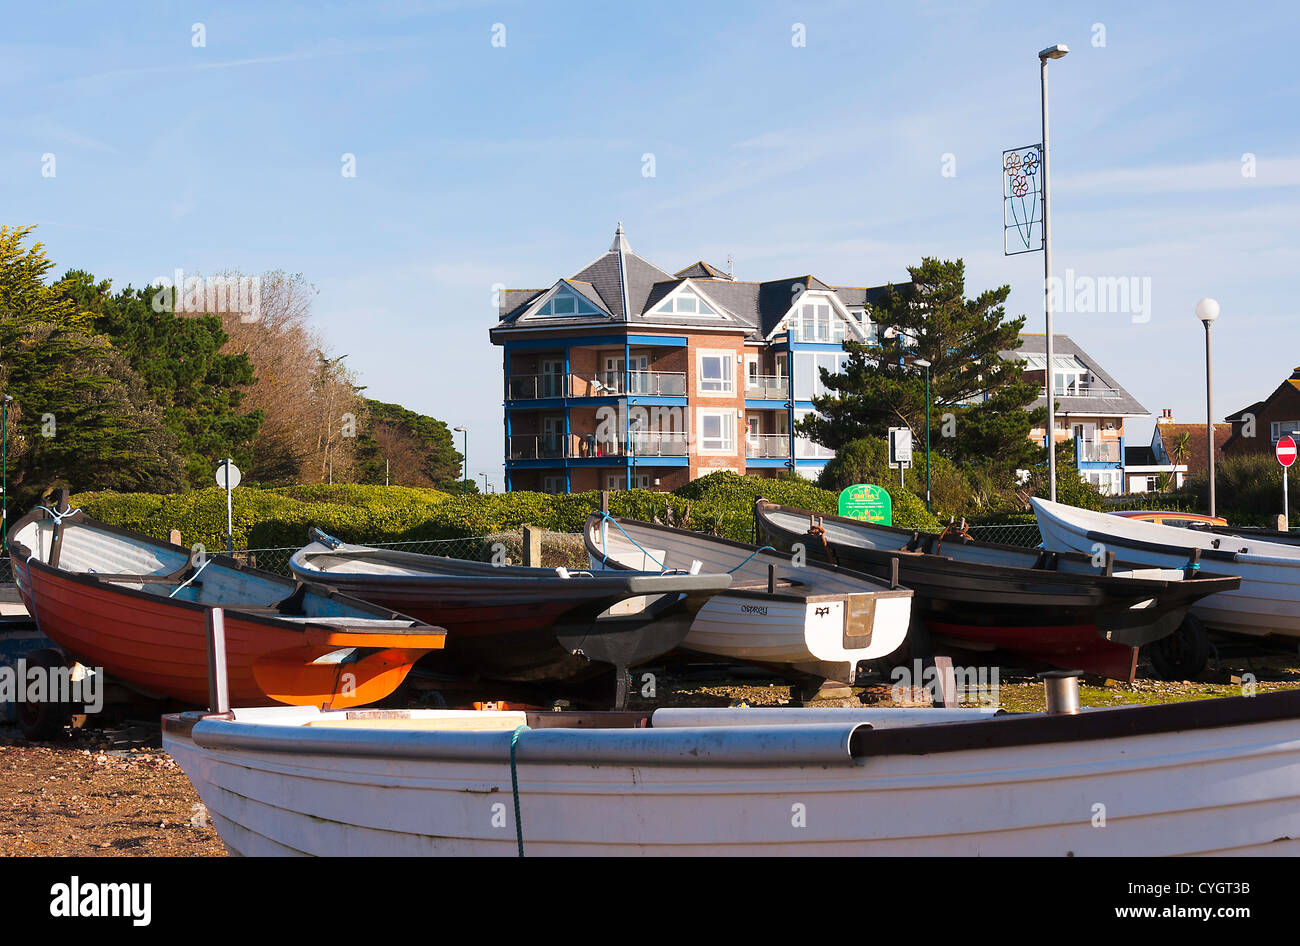 Small Inshore Fishing Boats In Park With Residential Home Apartment Block Aldwick Bognor Regis West Sussex